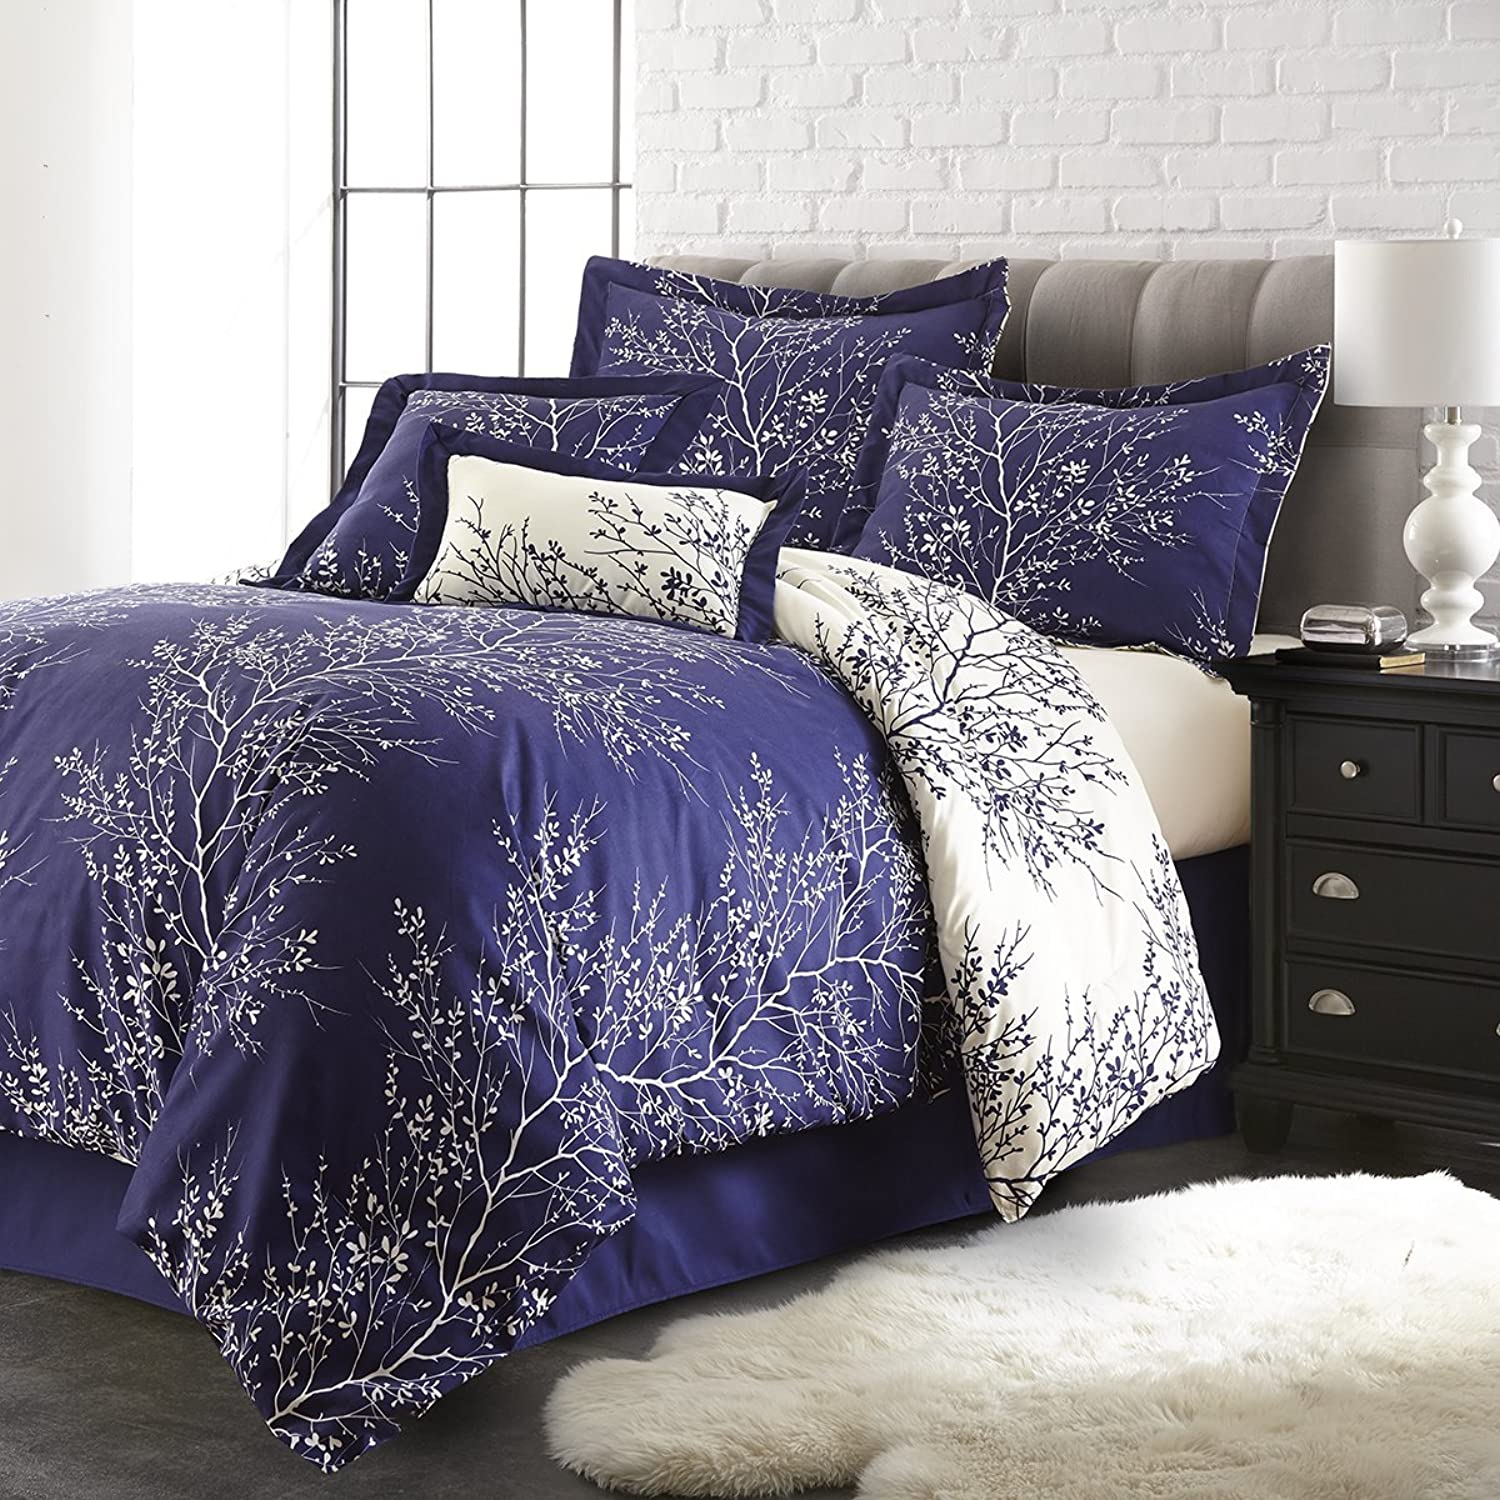 Spirit Linen Hotel 5Th Ave 6-Piece Foliage Collection Plush Reversible Comforter Set, Queen, Navy Ivory